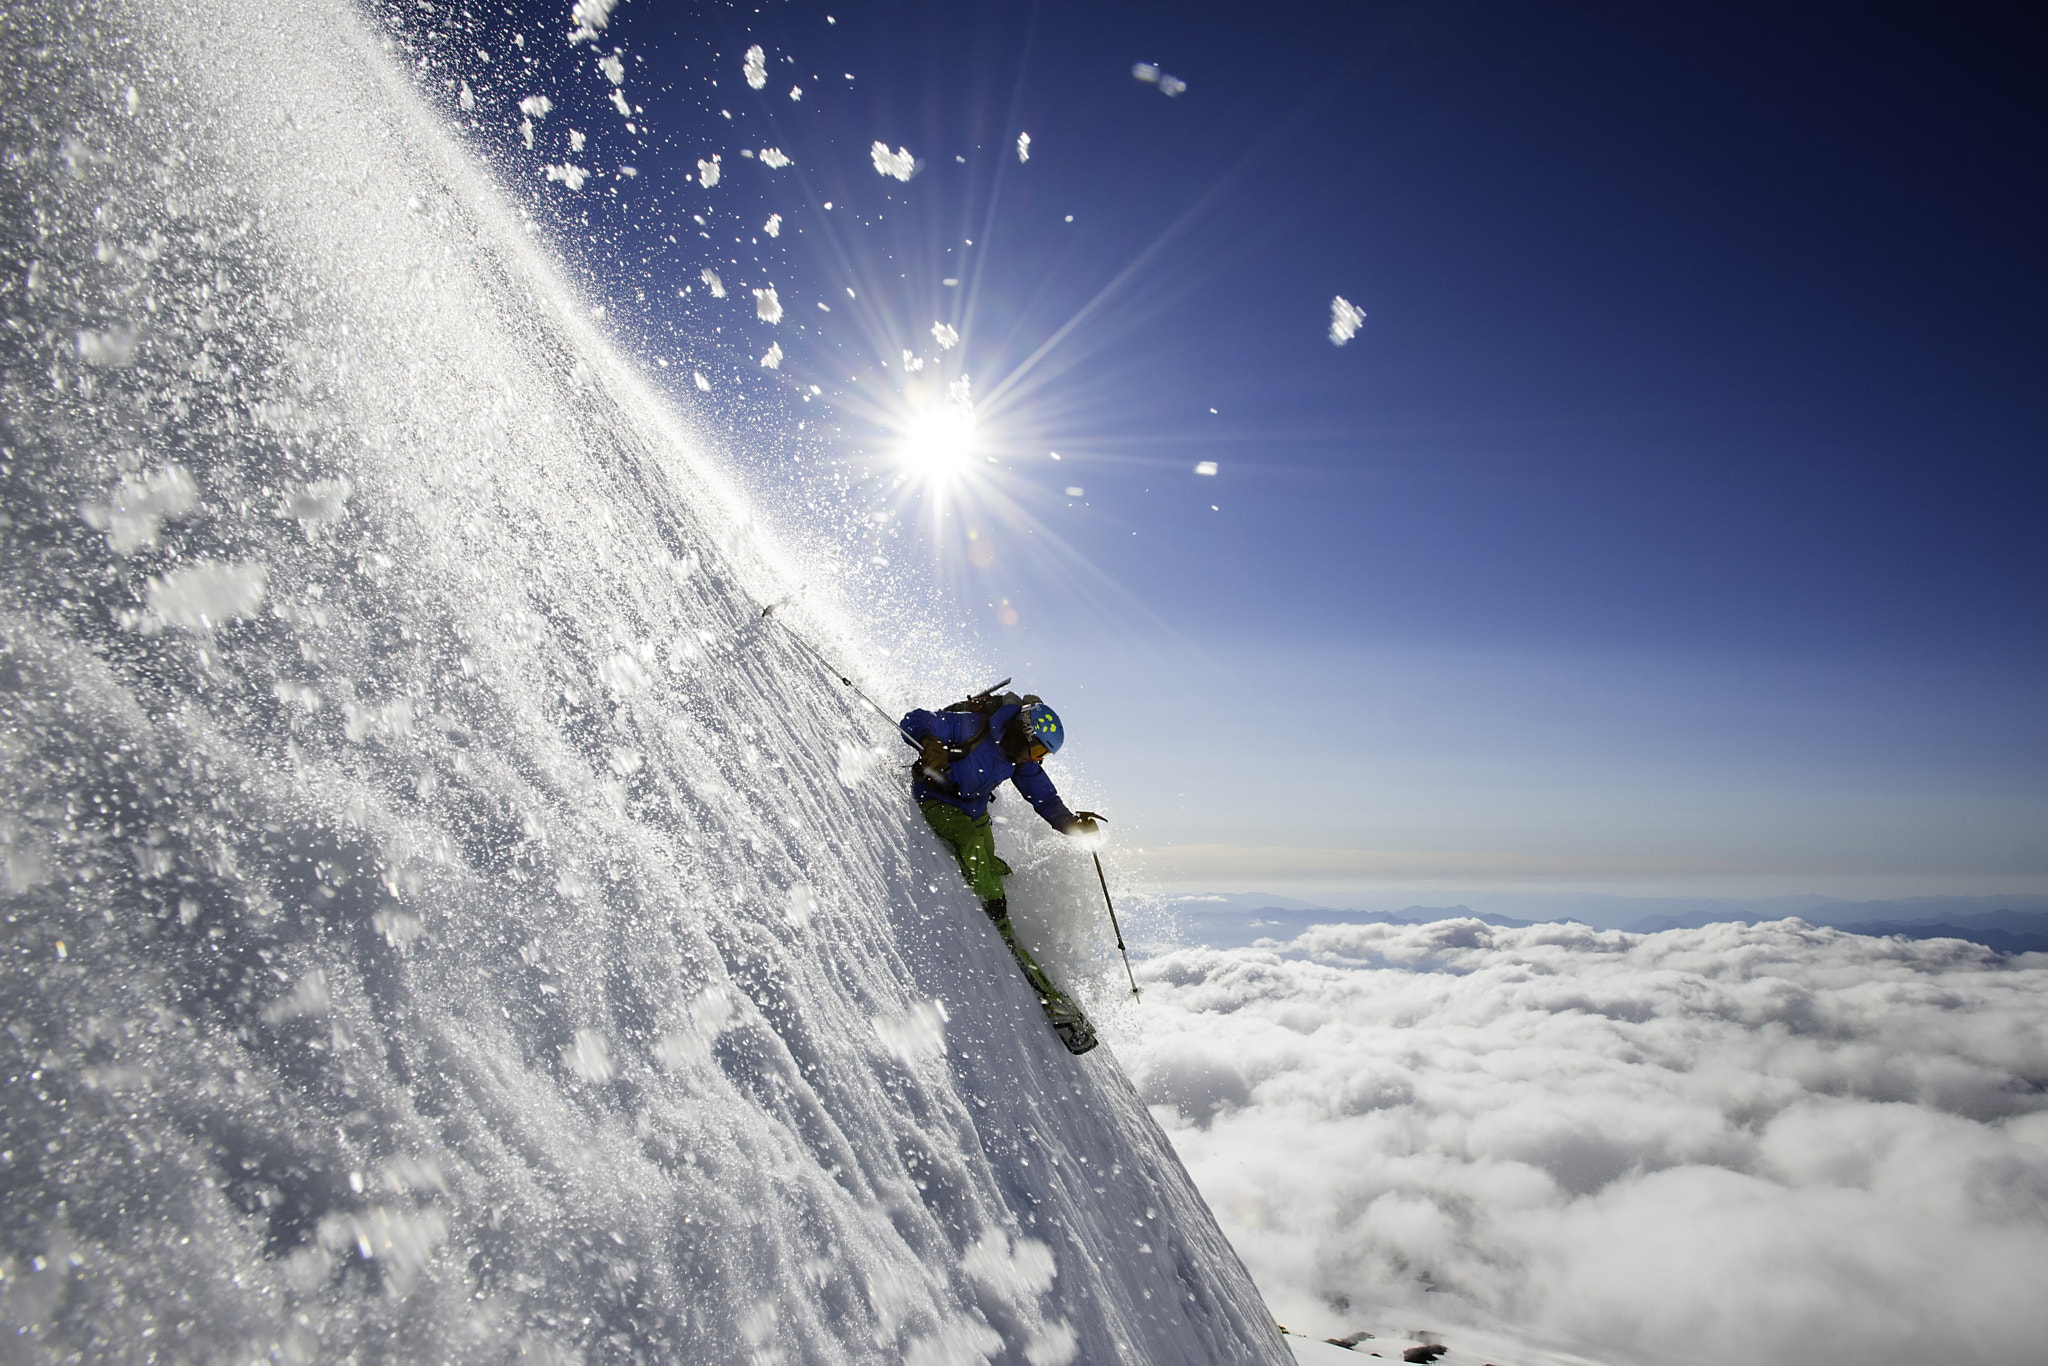 Photograph Steep Summer Volcano Skiing by Jason  Hummel on 500px